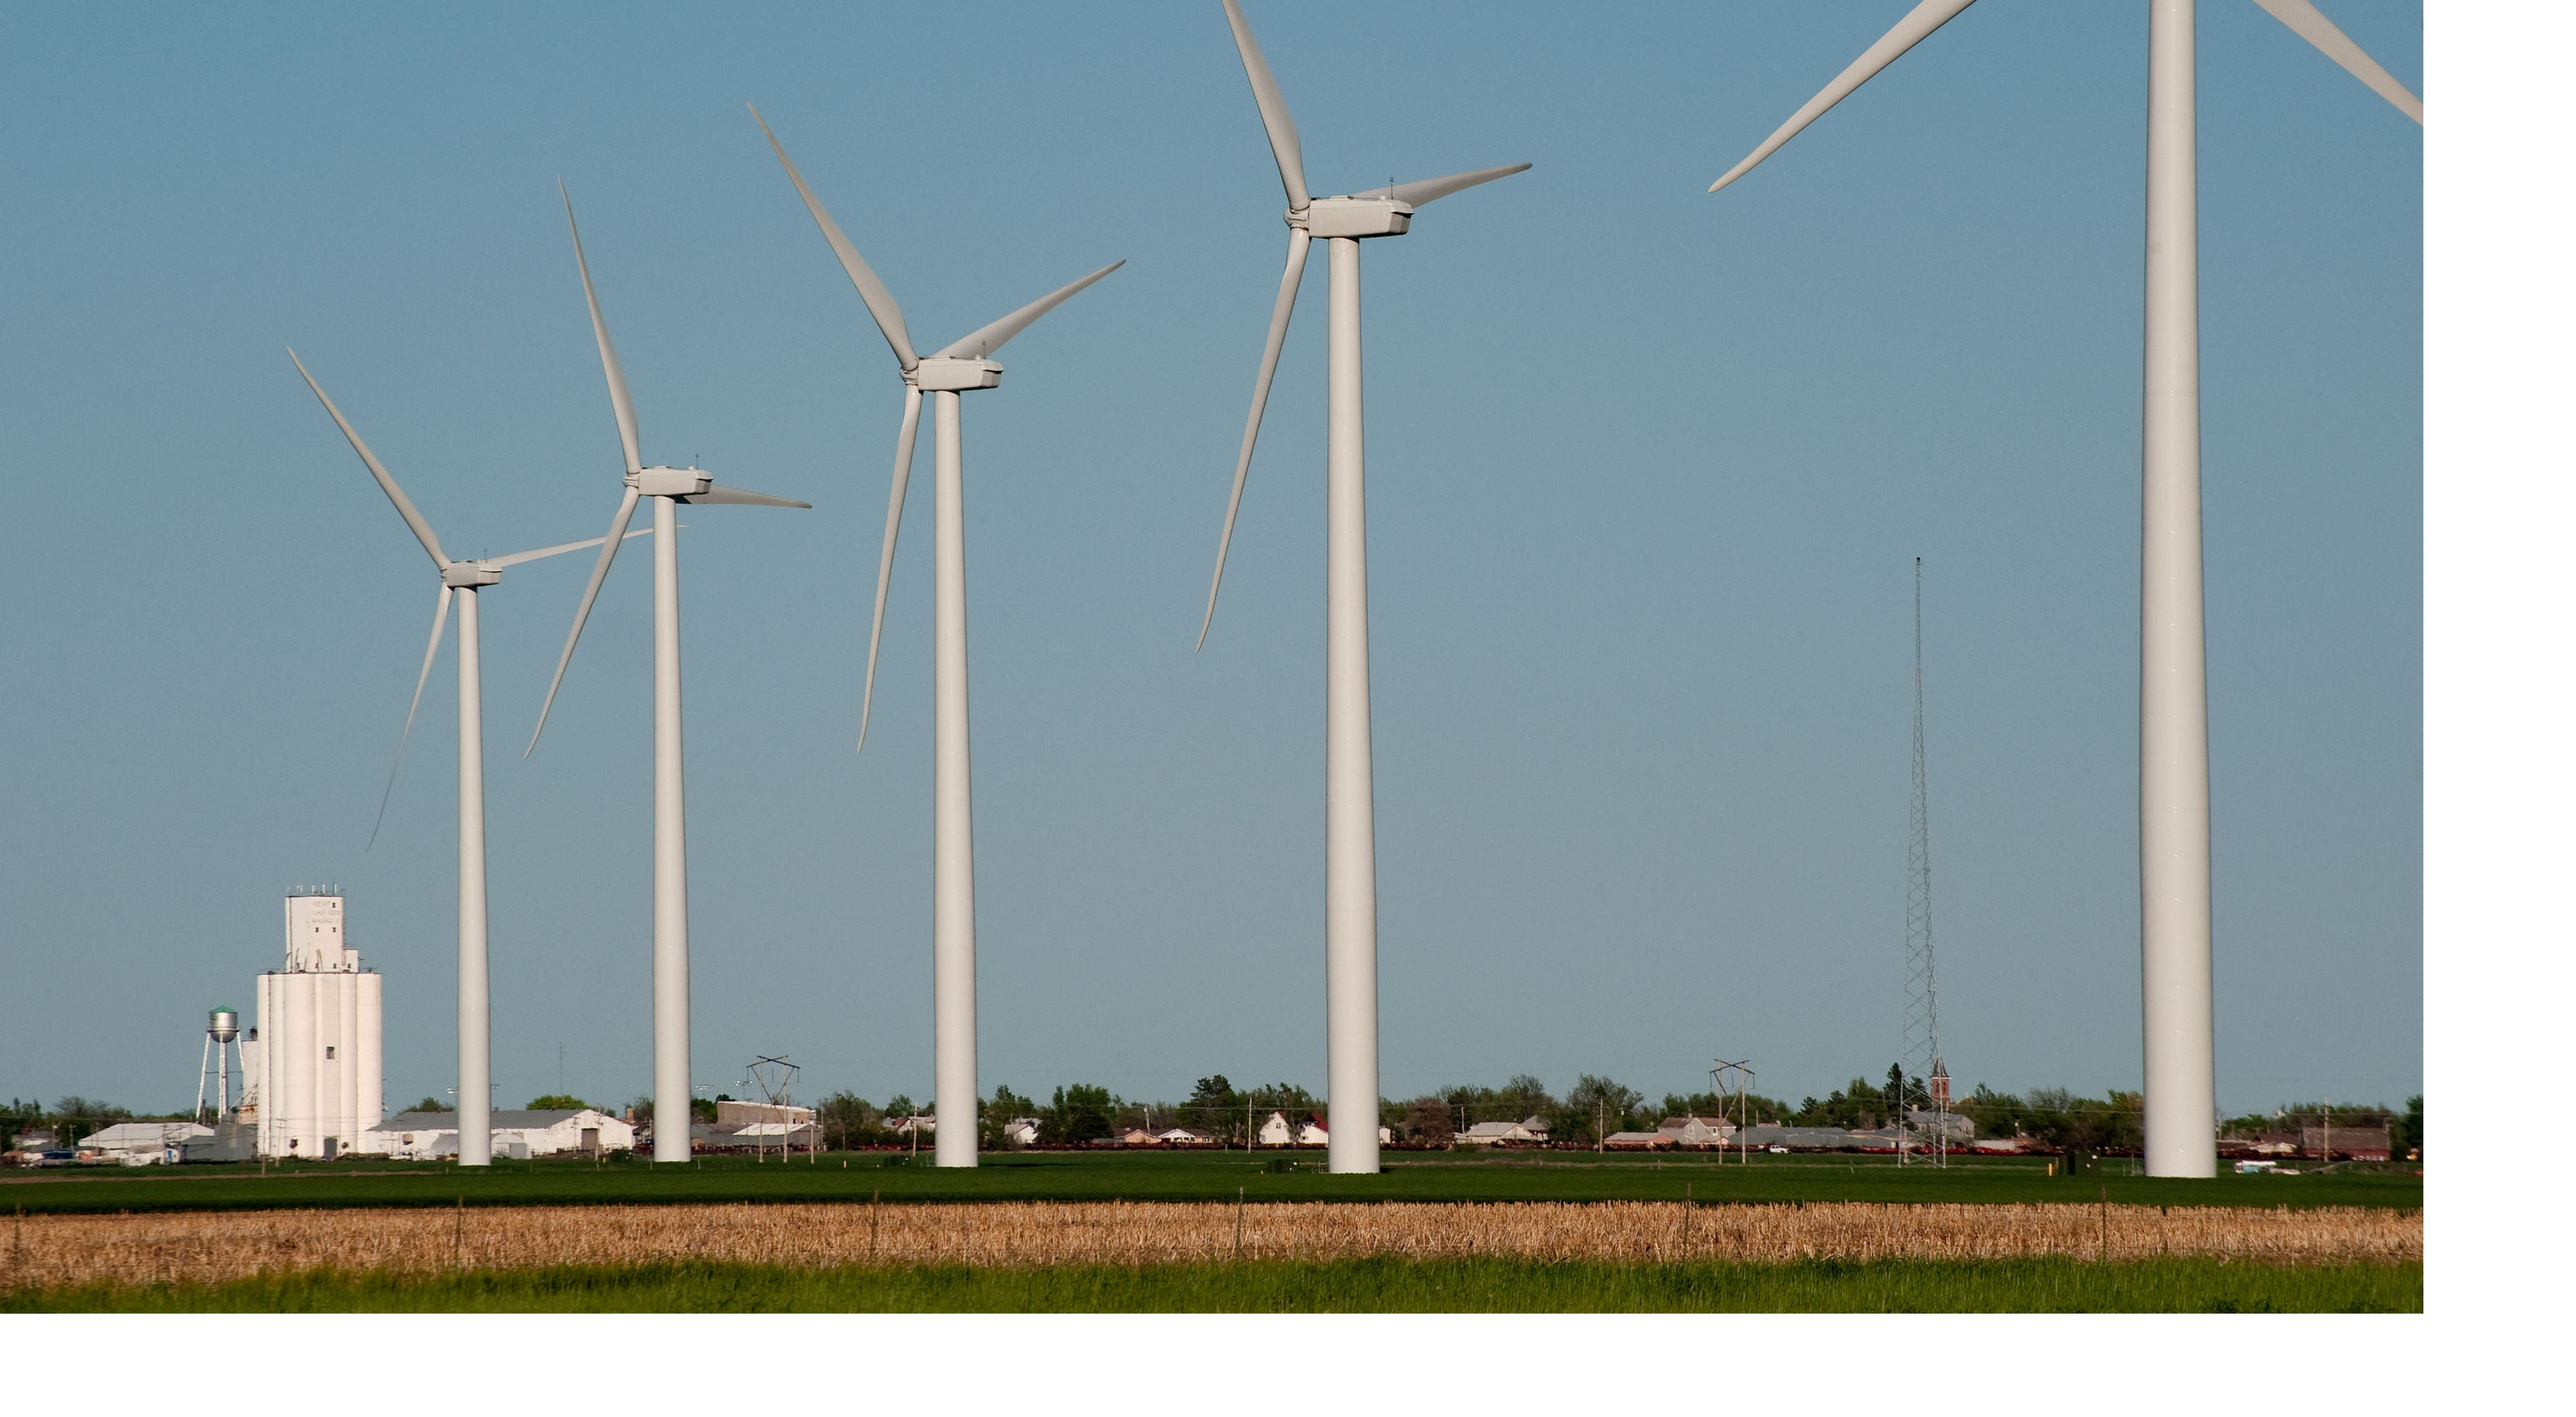 Eight industrial wind turbines over crops on a Kansas farm.